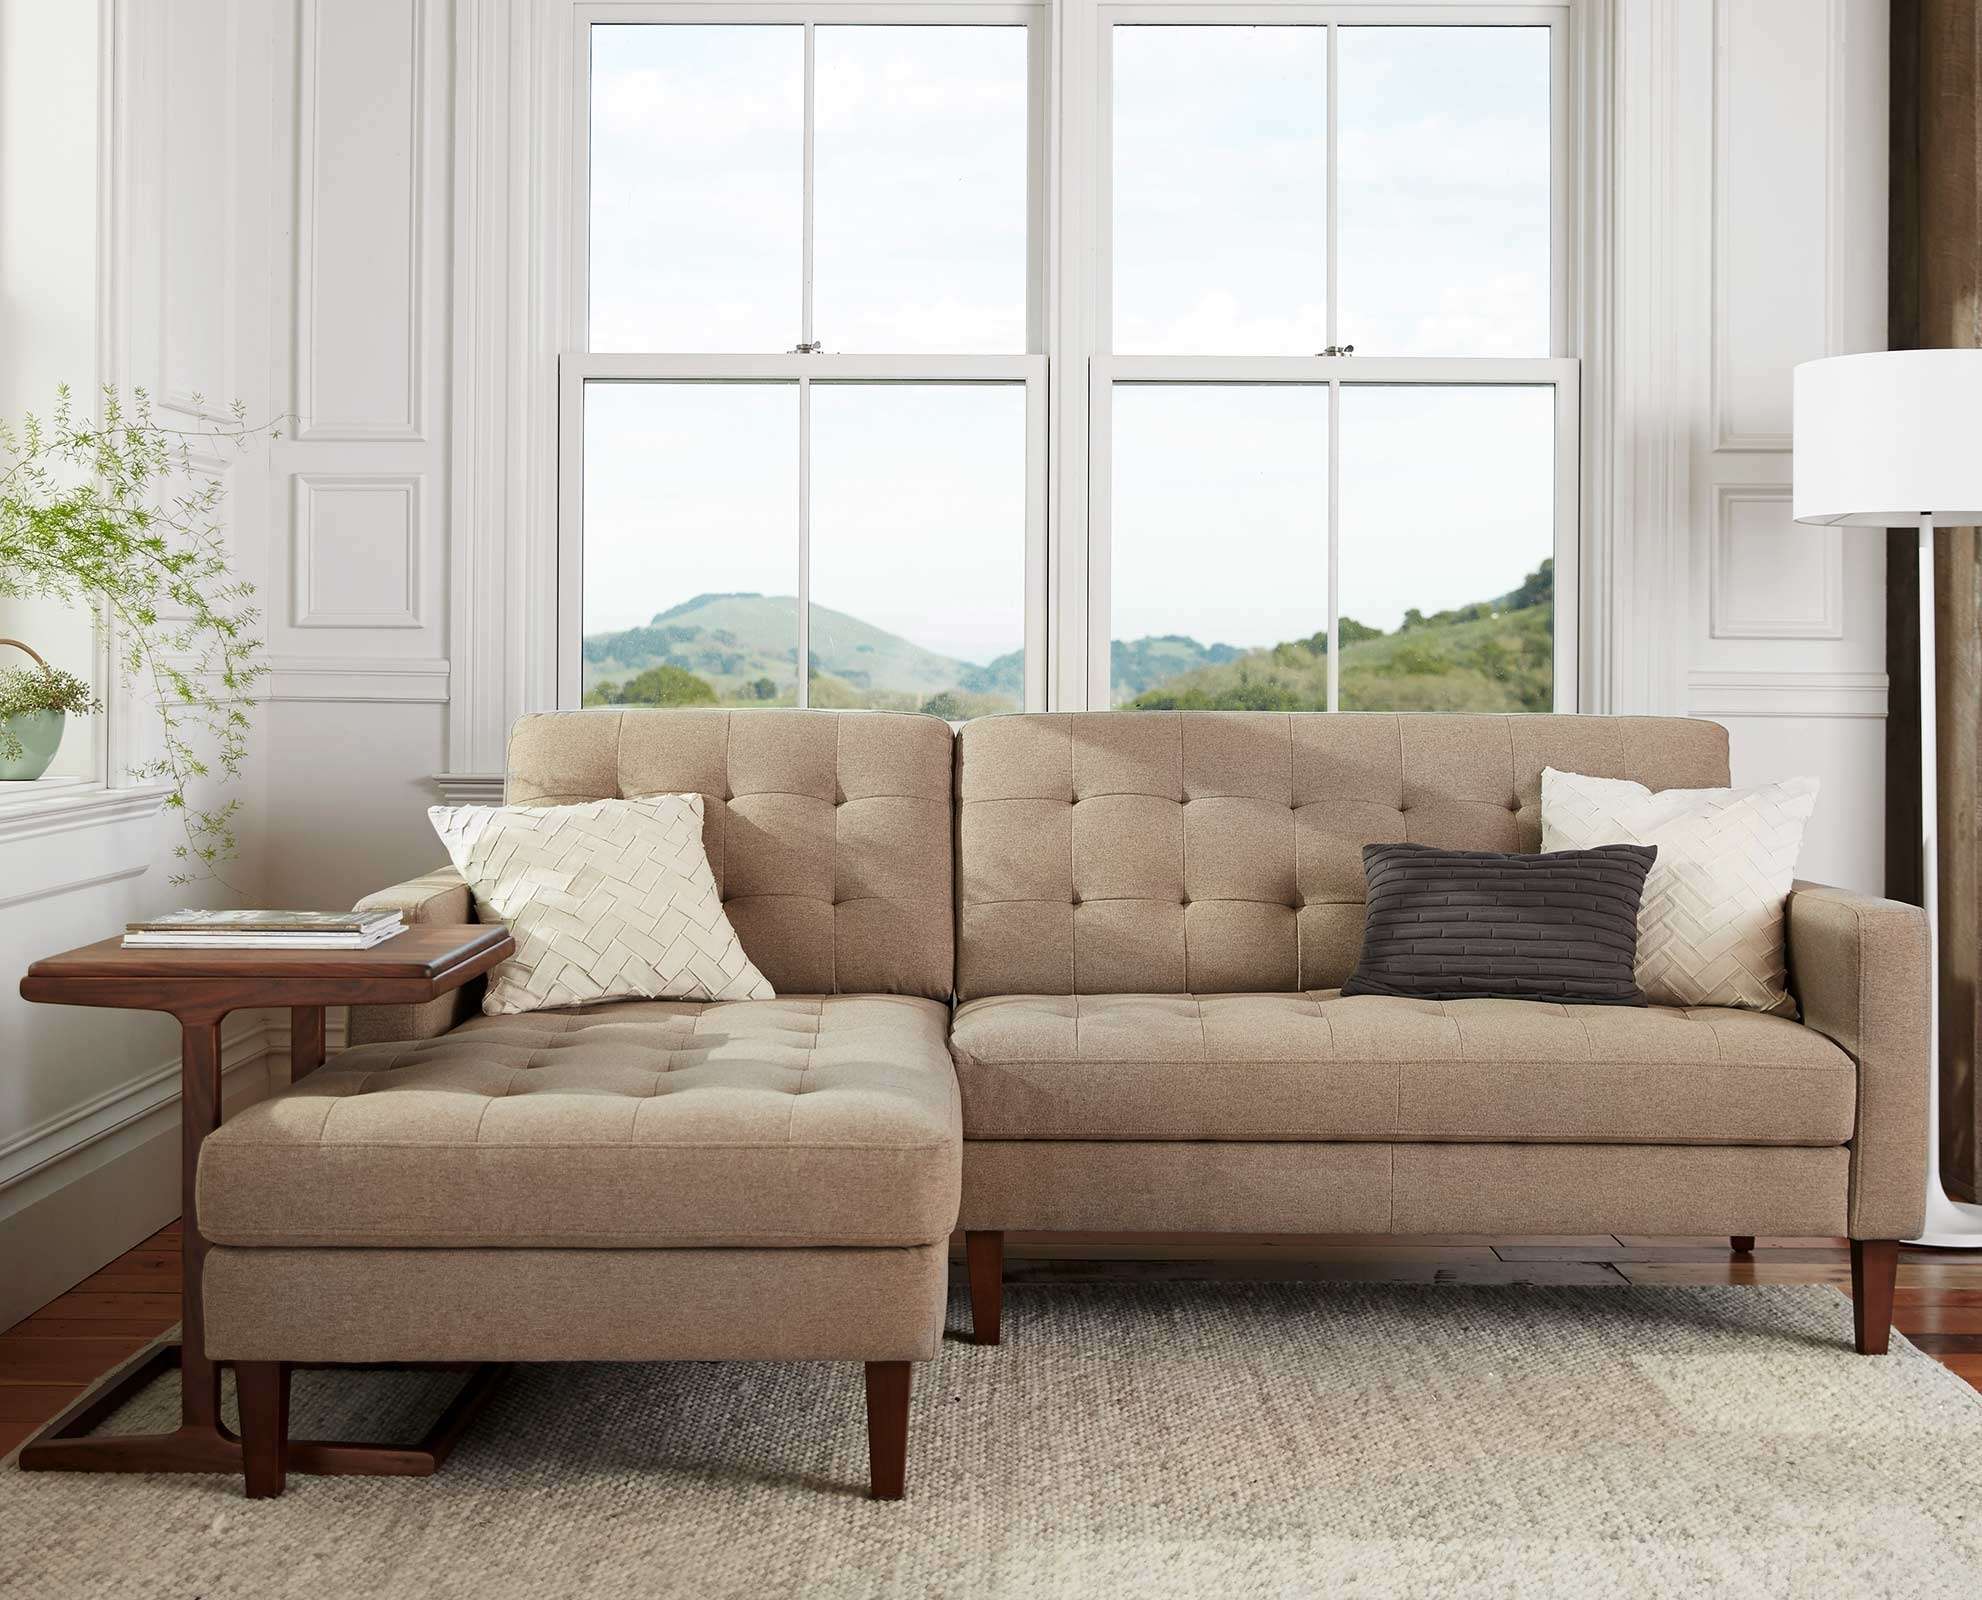 Camilla Chaise Sectional | New House Decor | Pinterest | Upholstery with regard to Dania Sectional Sofas (Image 2 of 10)